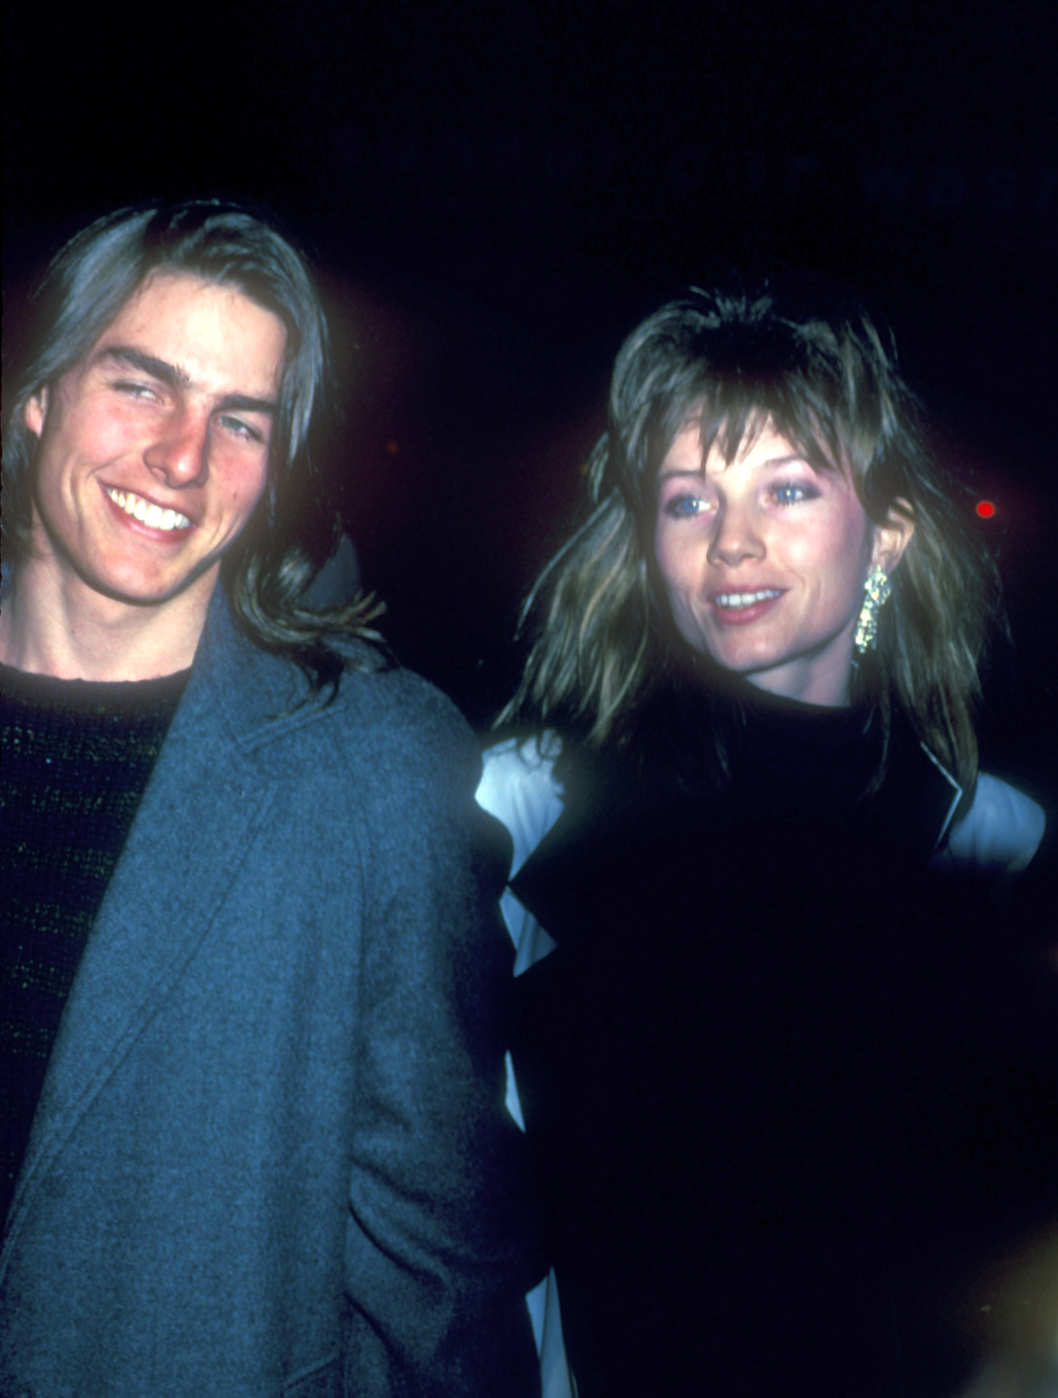 Tom Cruise & Rebecca DeMornay at the Directors Guild of America in Los Angeles, California (Photo by Barry King/WireImage)